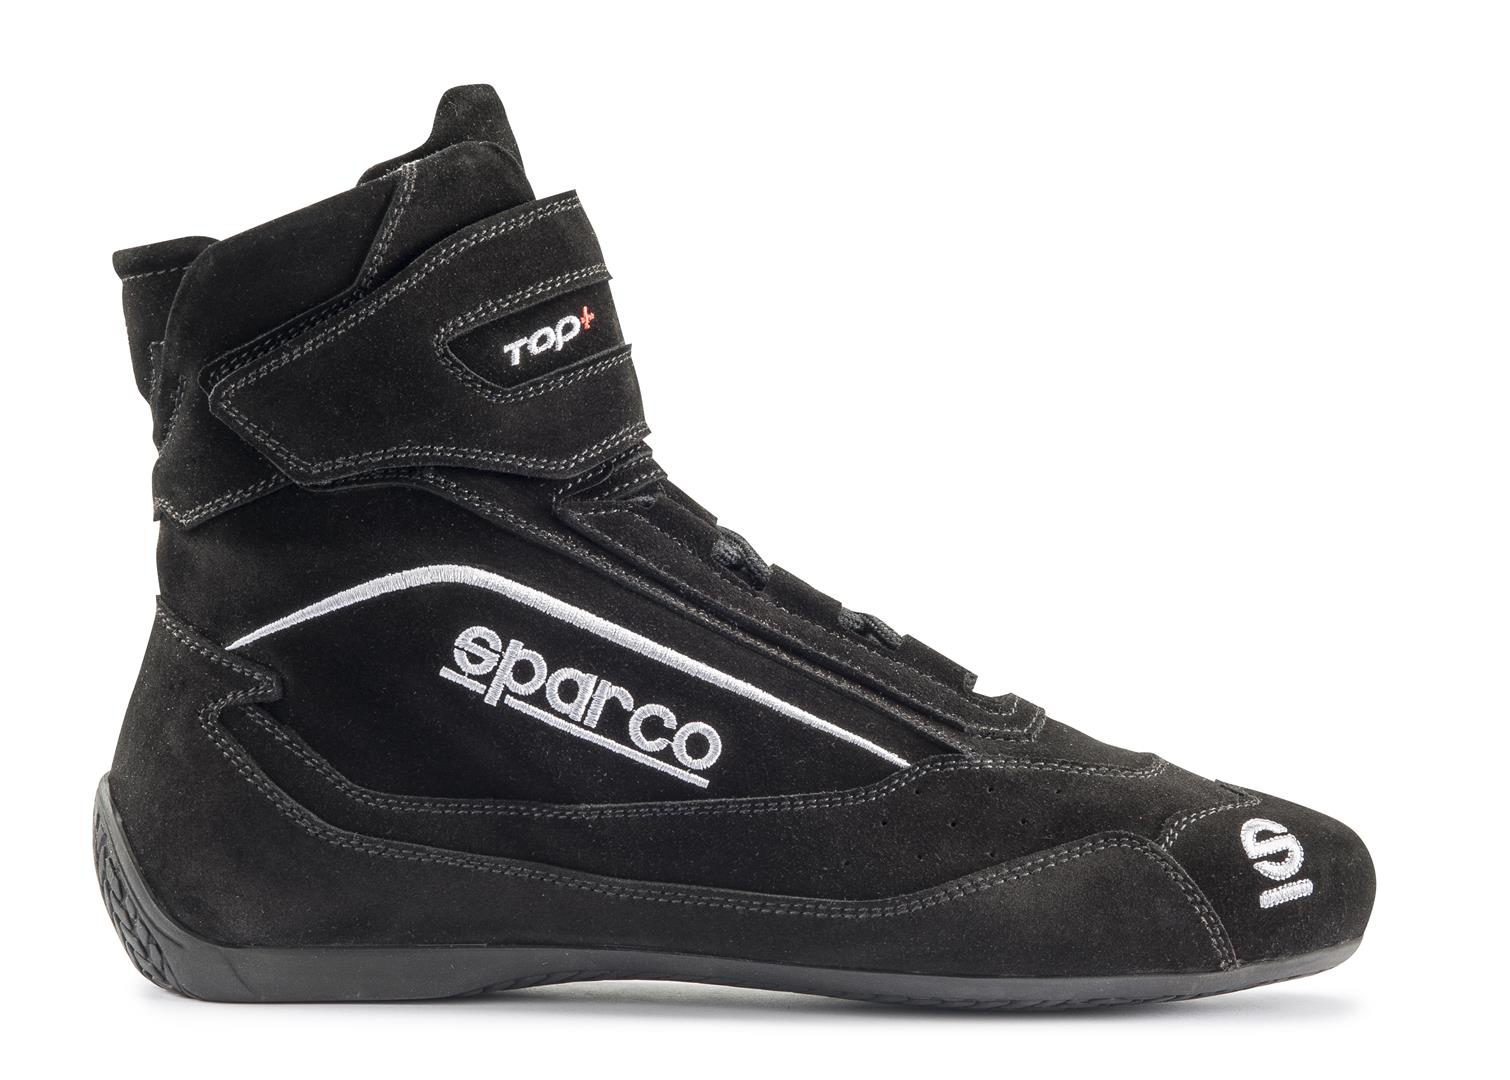 Sparco Black Top+ SH-5 Driving Shoes EU 42 | US 8.5 - 00121042NR